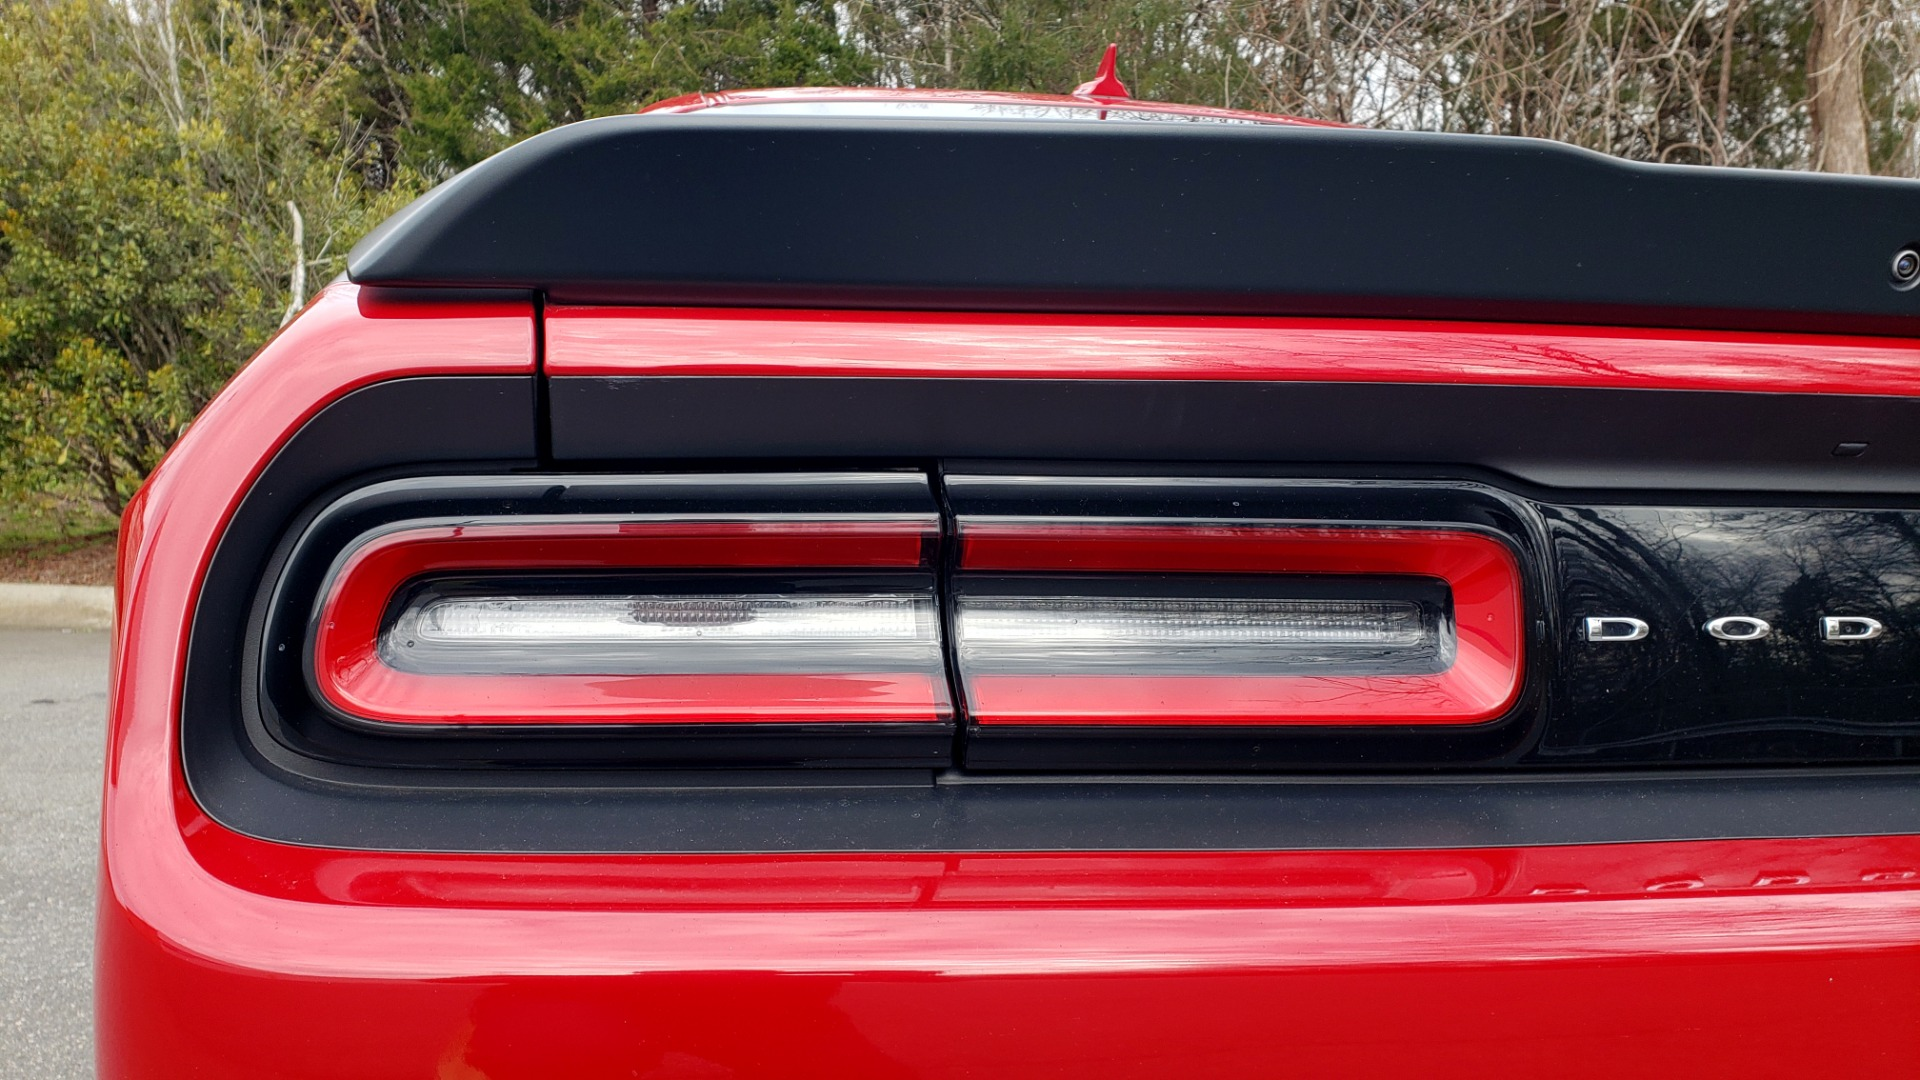 Used 2016 Dodge CHALLENGER R/T SCAT PACK / TECHNOLOGY / ALPINE / 6-SPEED MAN for sale Sold at Formula Imports in Charlotte NC 28227 25